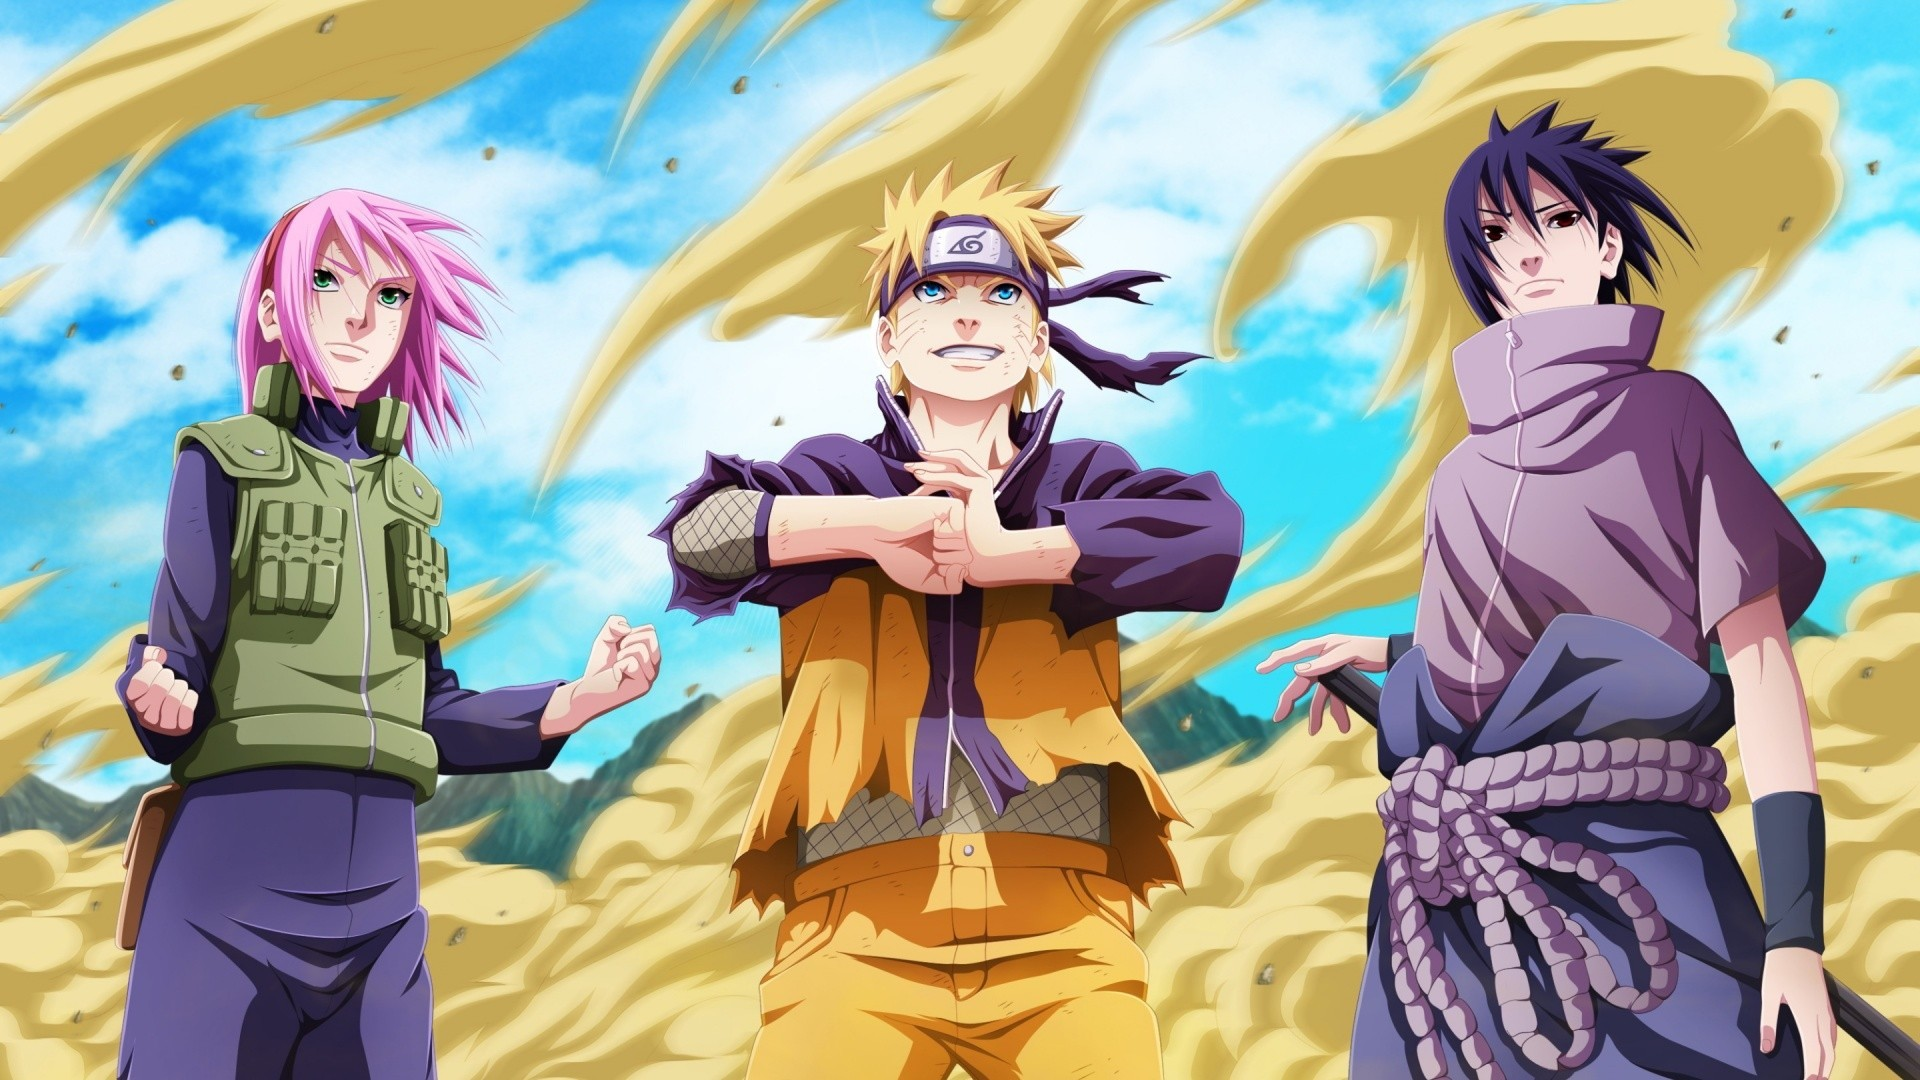 Beautiful Wallpaper Naruto Tablet - 746519-naruto-wallpapers-hd-2018-1920x1080-for-tablet  Pic.jpg